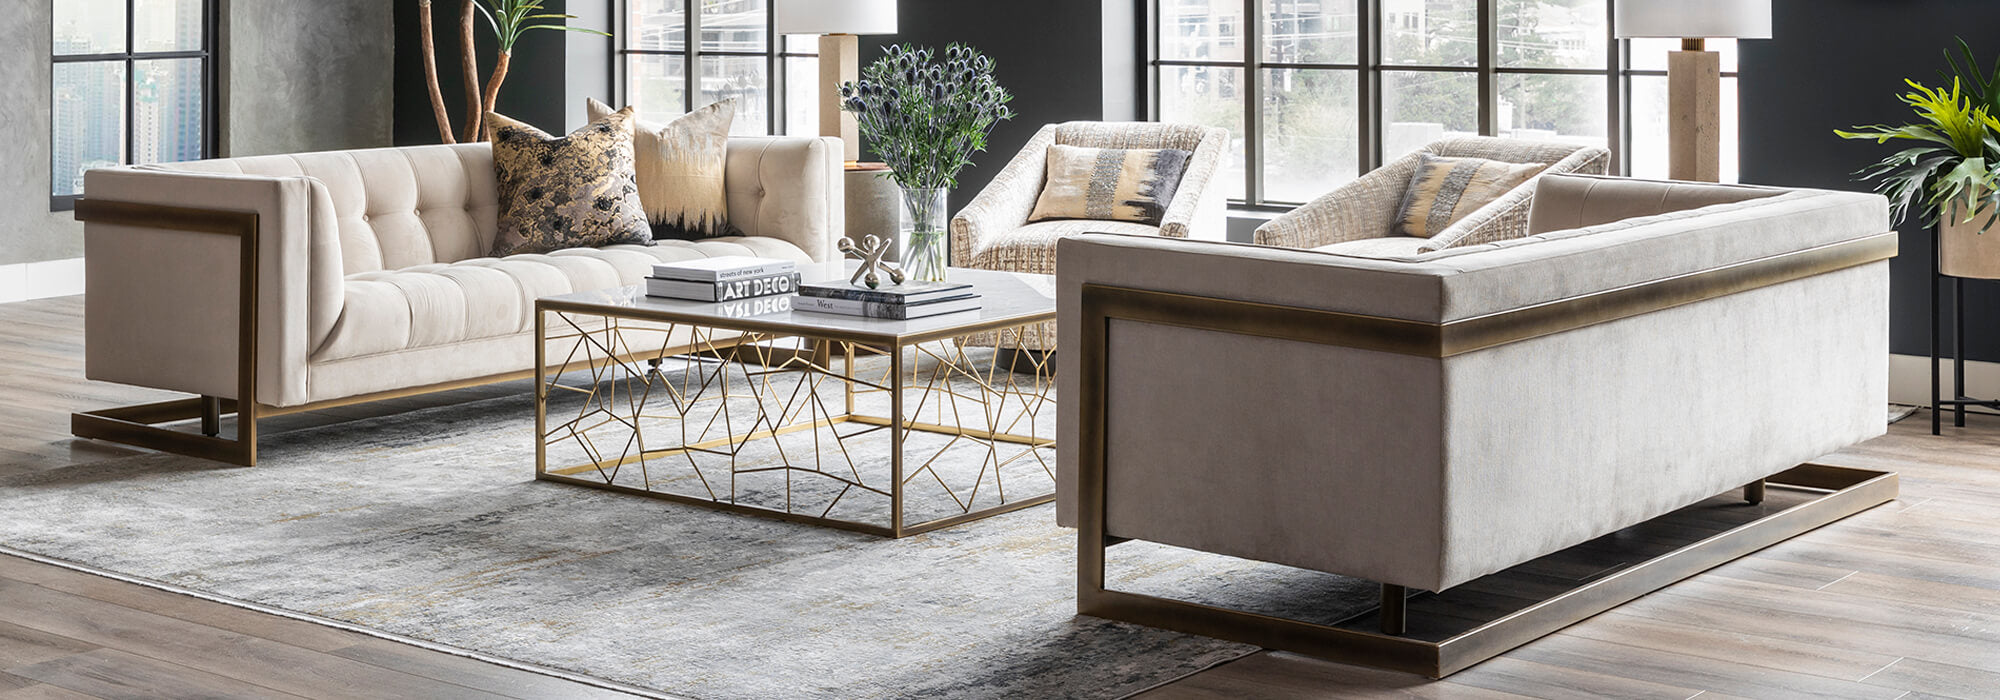 Modern, Eclectic Living Room Furniture | High Fashion Home